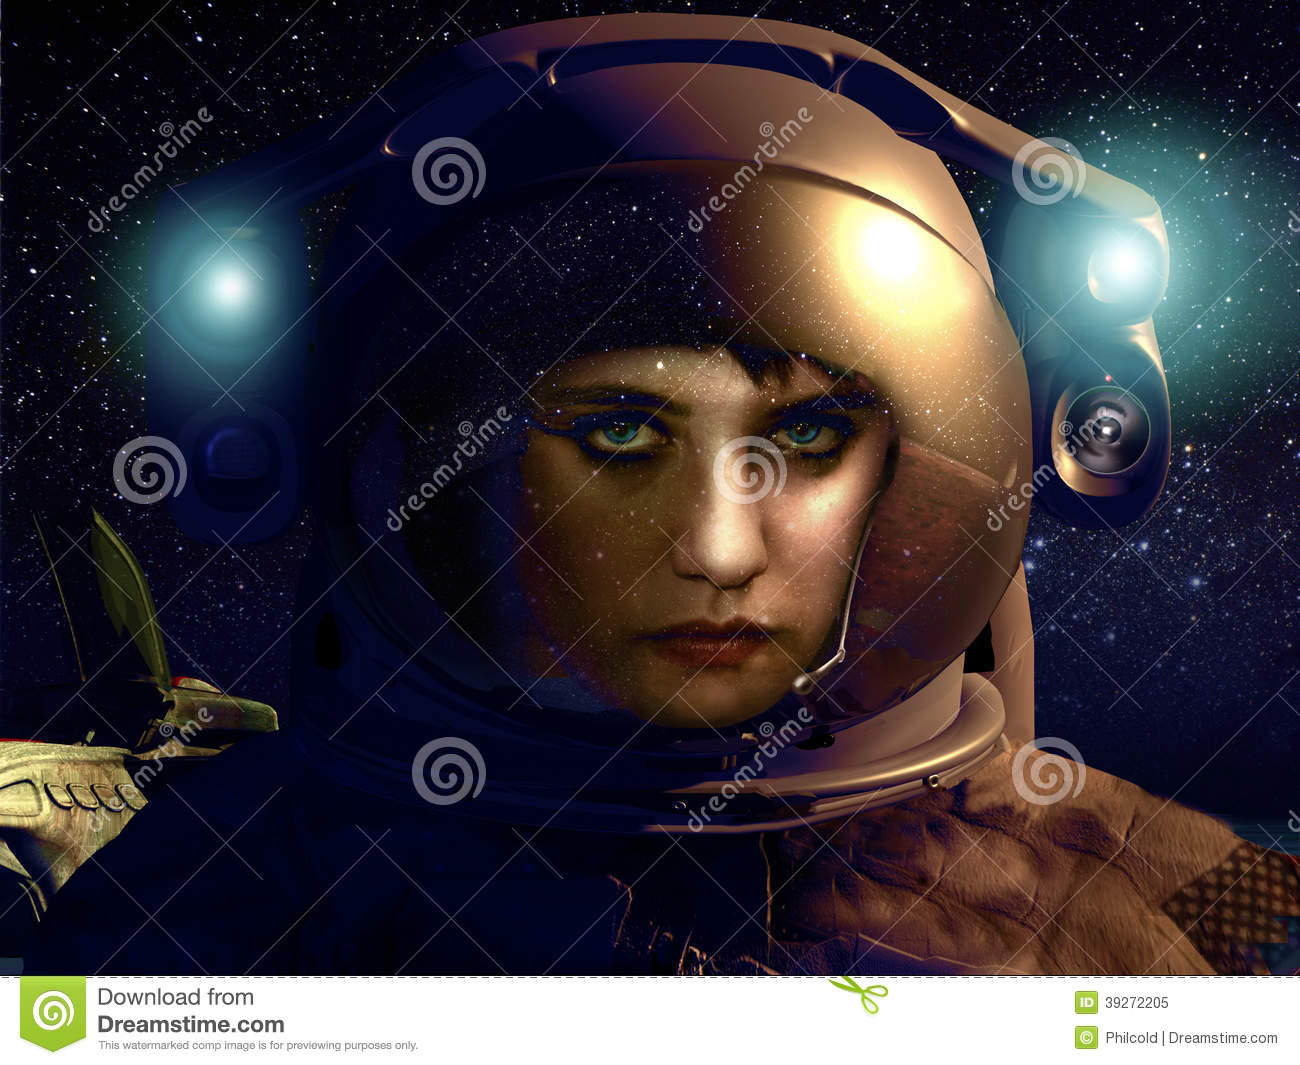 her space suit-#38